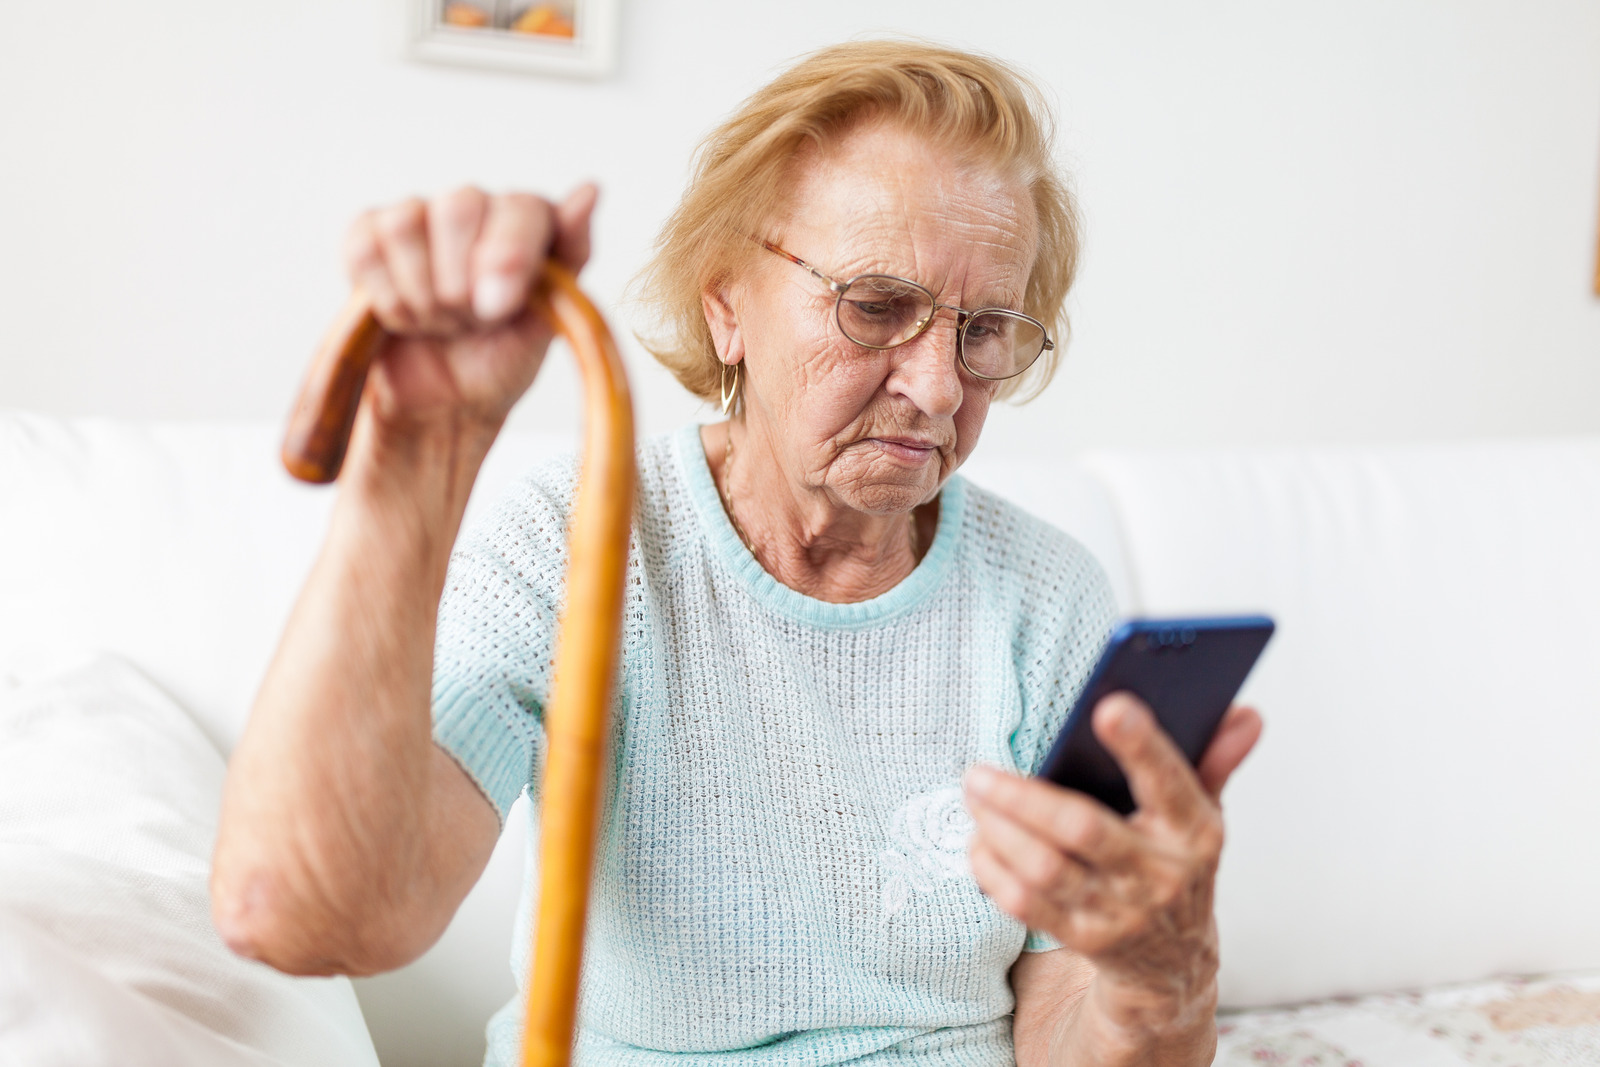 canva_elderly_woman_with_glasses_using_a_mobile_phone.jpg